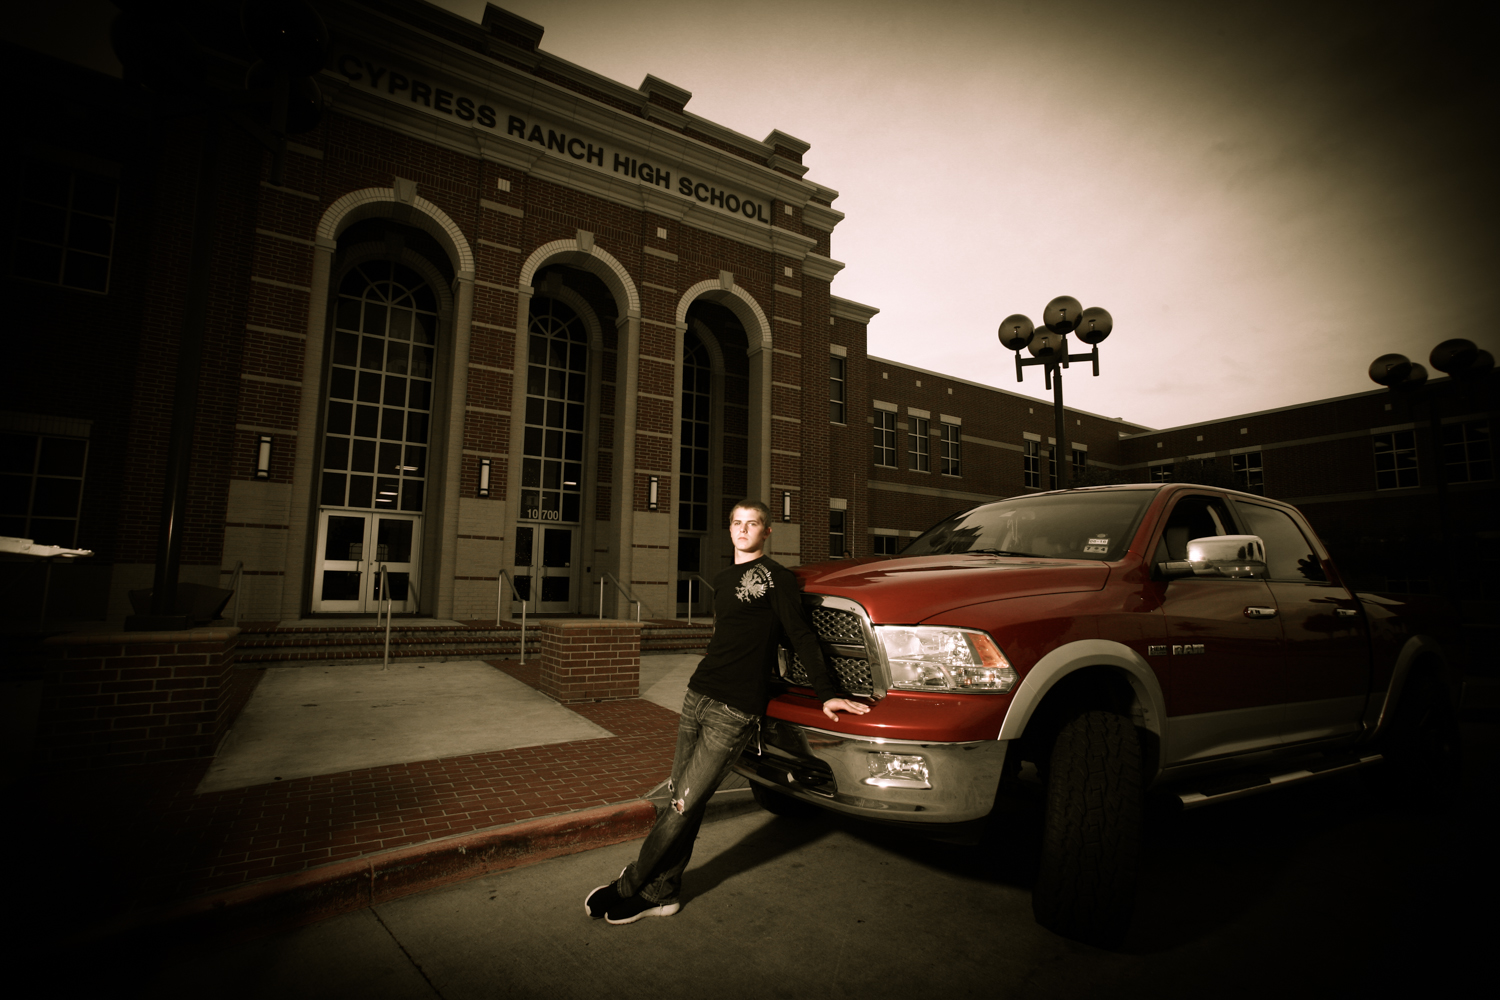 Senior Portrait (On Location With Car) - Guys